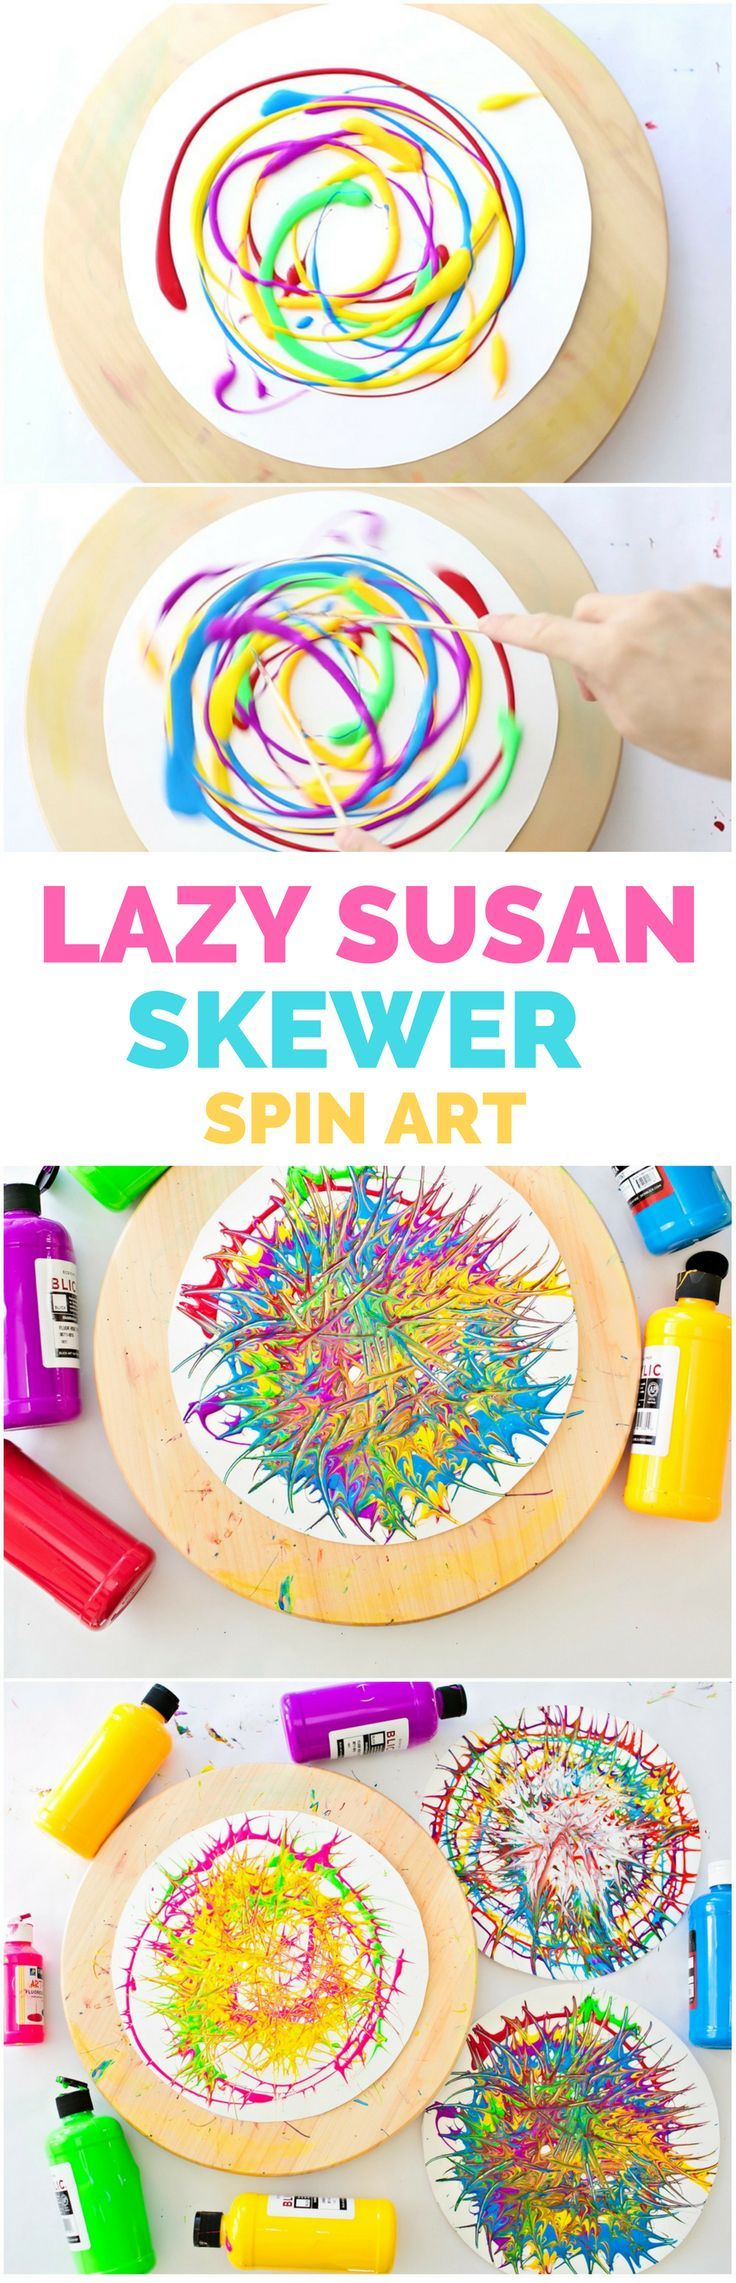 lazy susan skewer spin art with kids fun process action art for kids